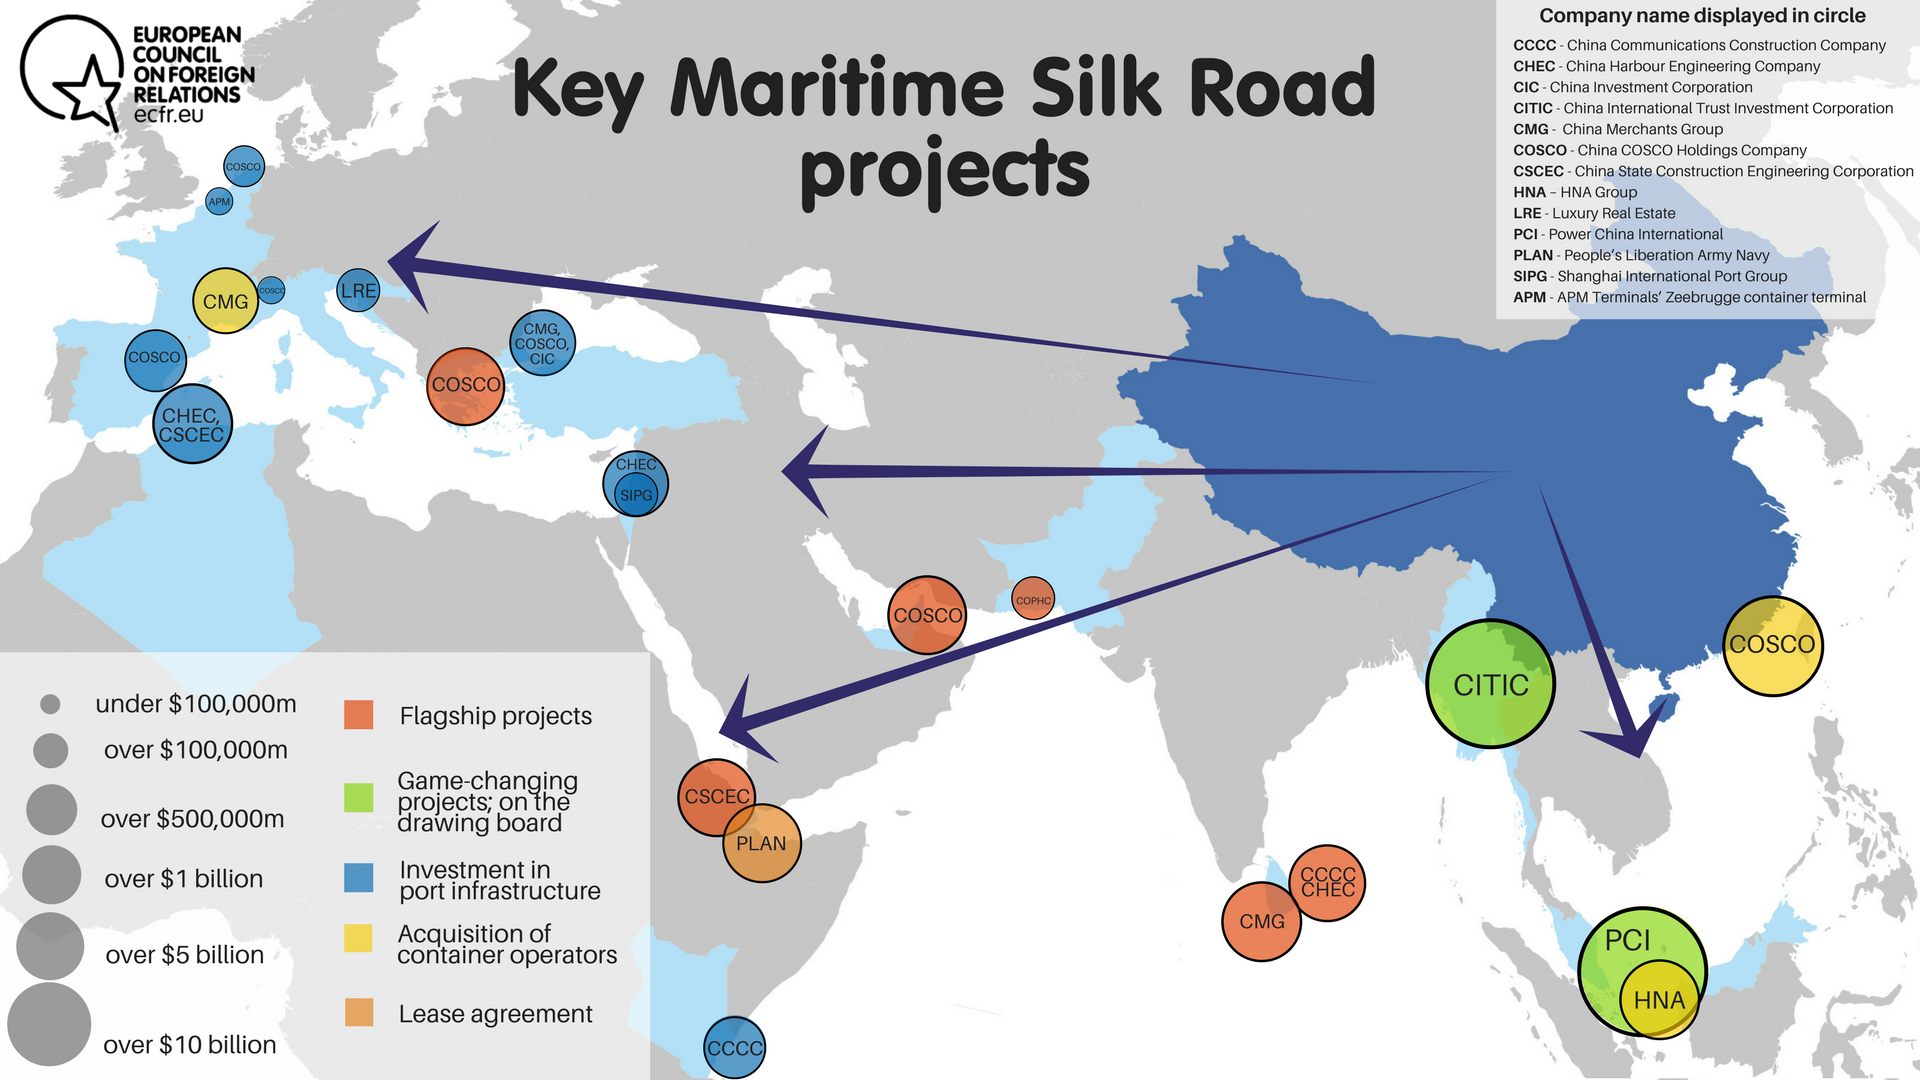 Key Maritime Silk Road projects